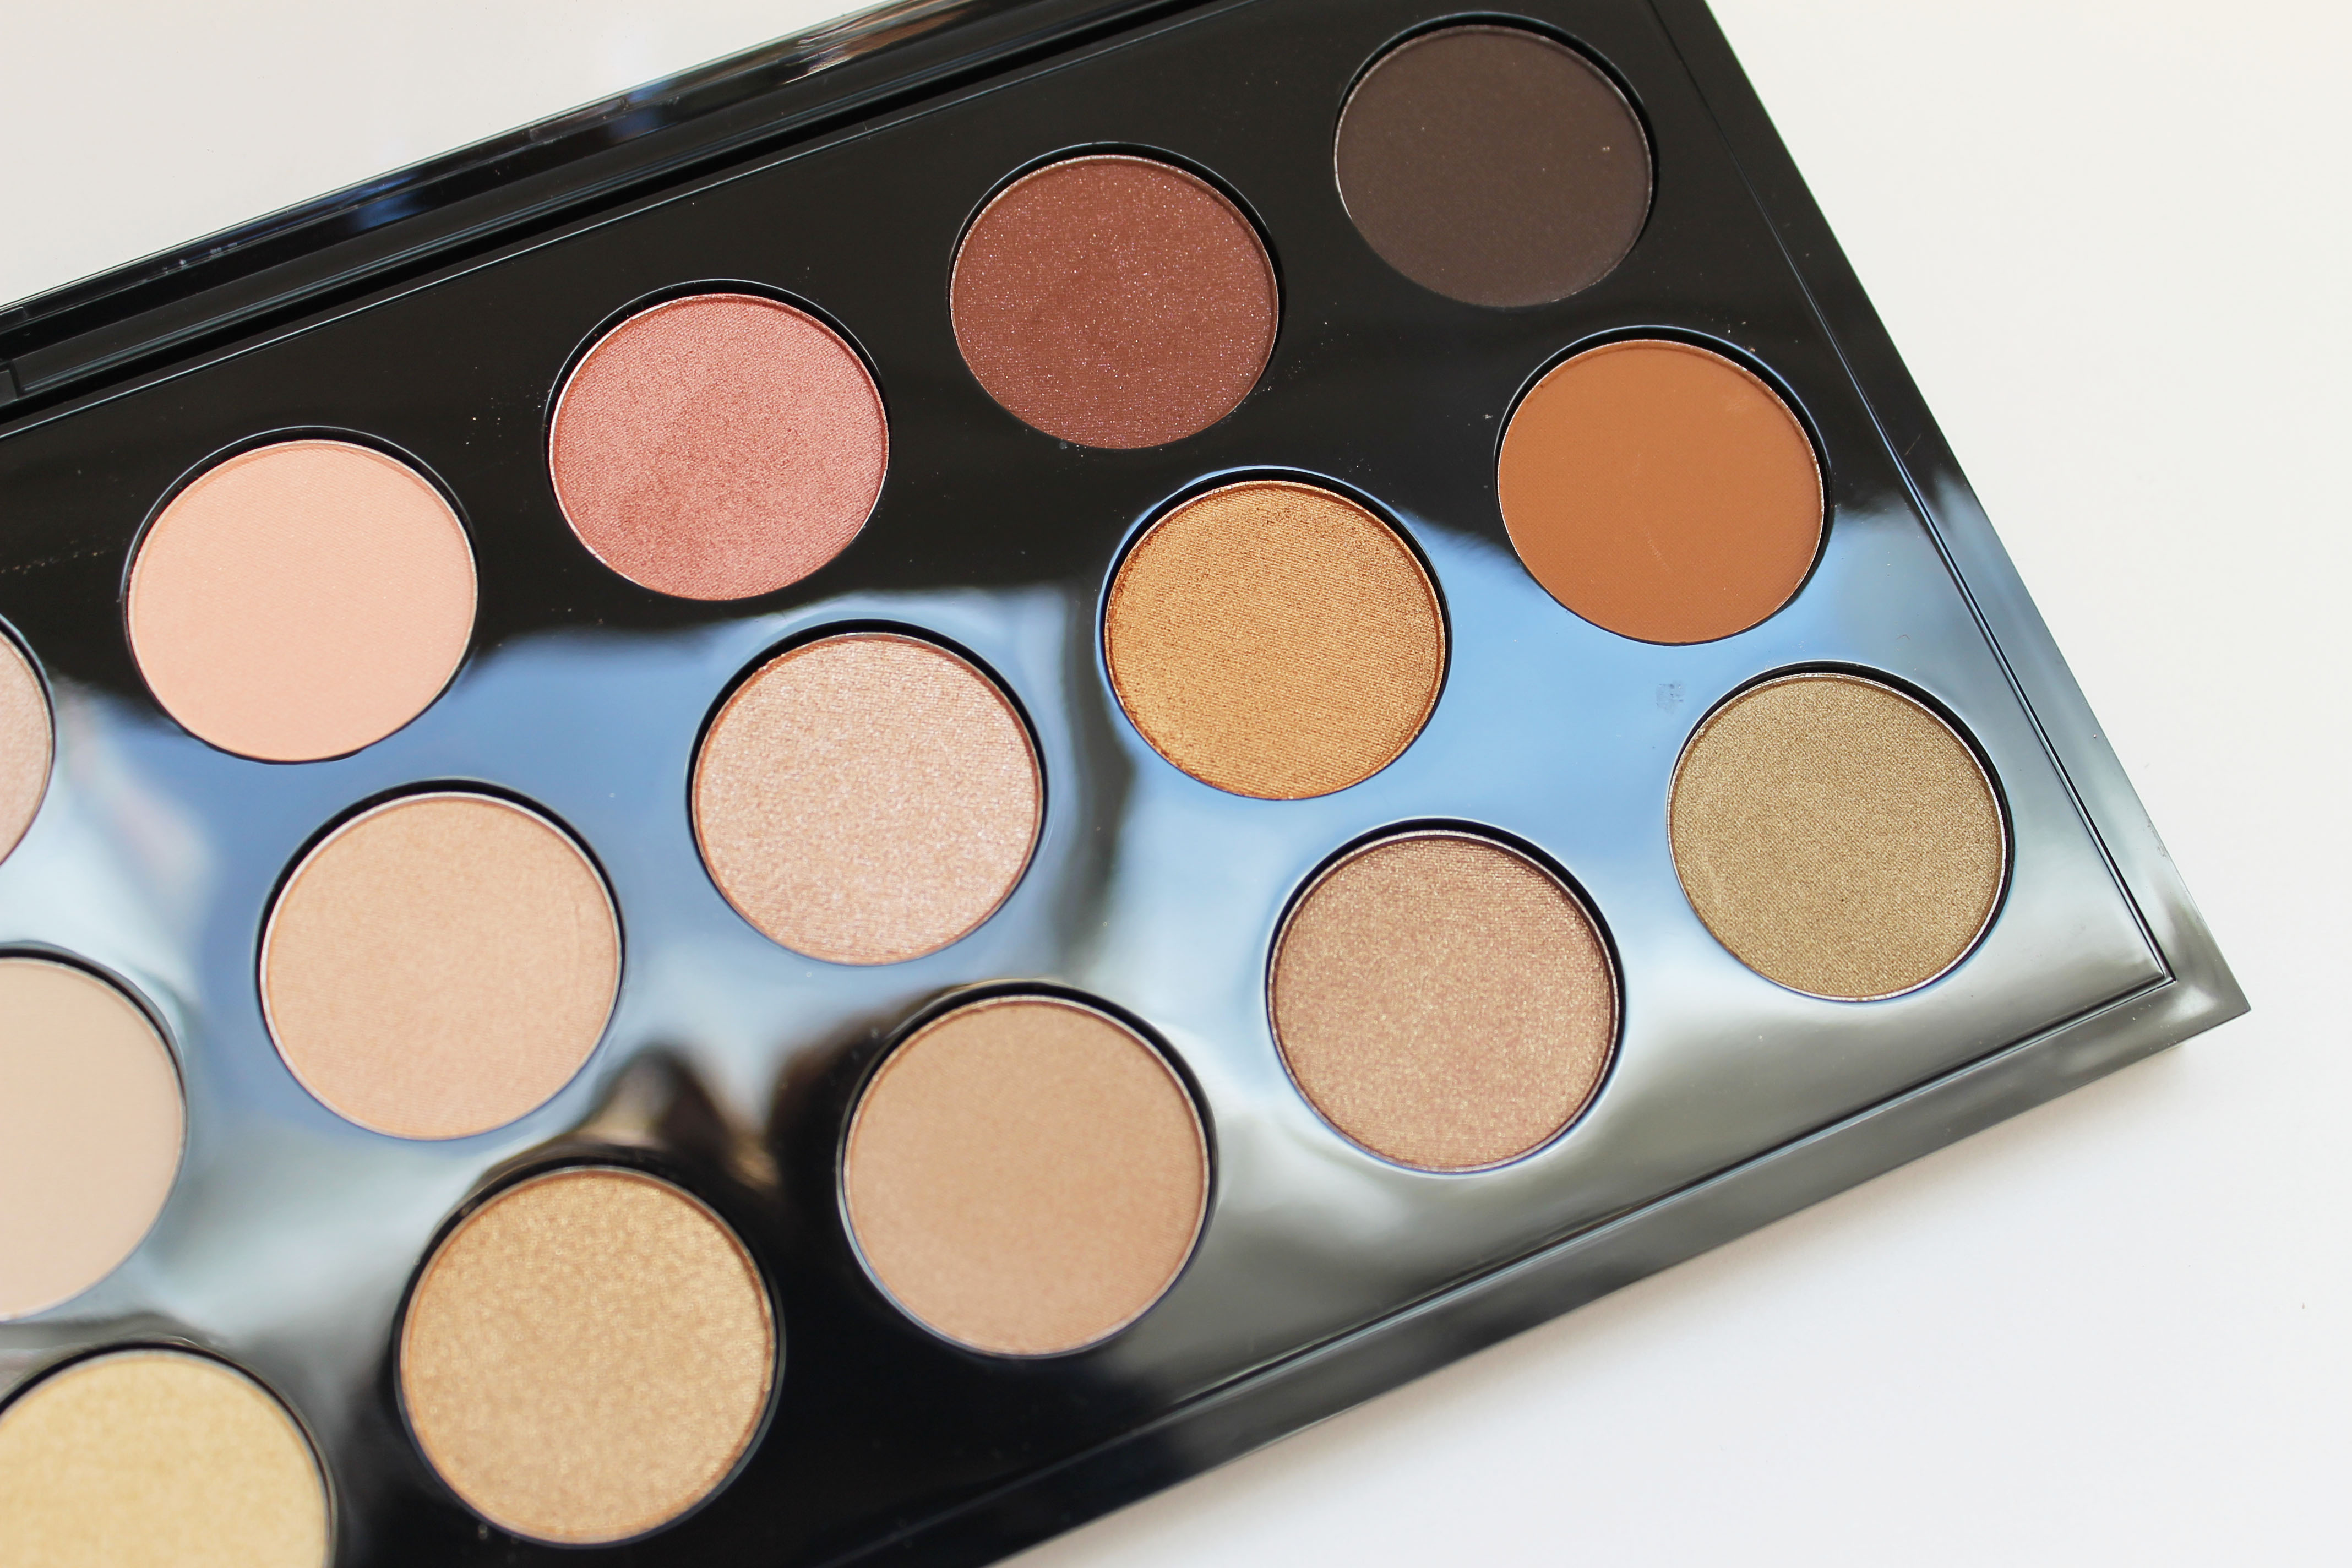 Mac eyeshadow x 15warm neutral palette the beauty vanity llc a mac eyeshadow x 15warm neutral palette thecheapjerseys Image collections